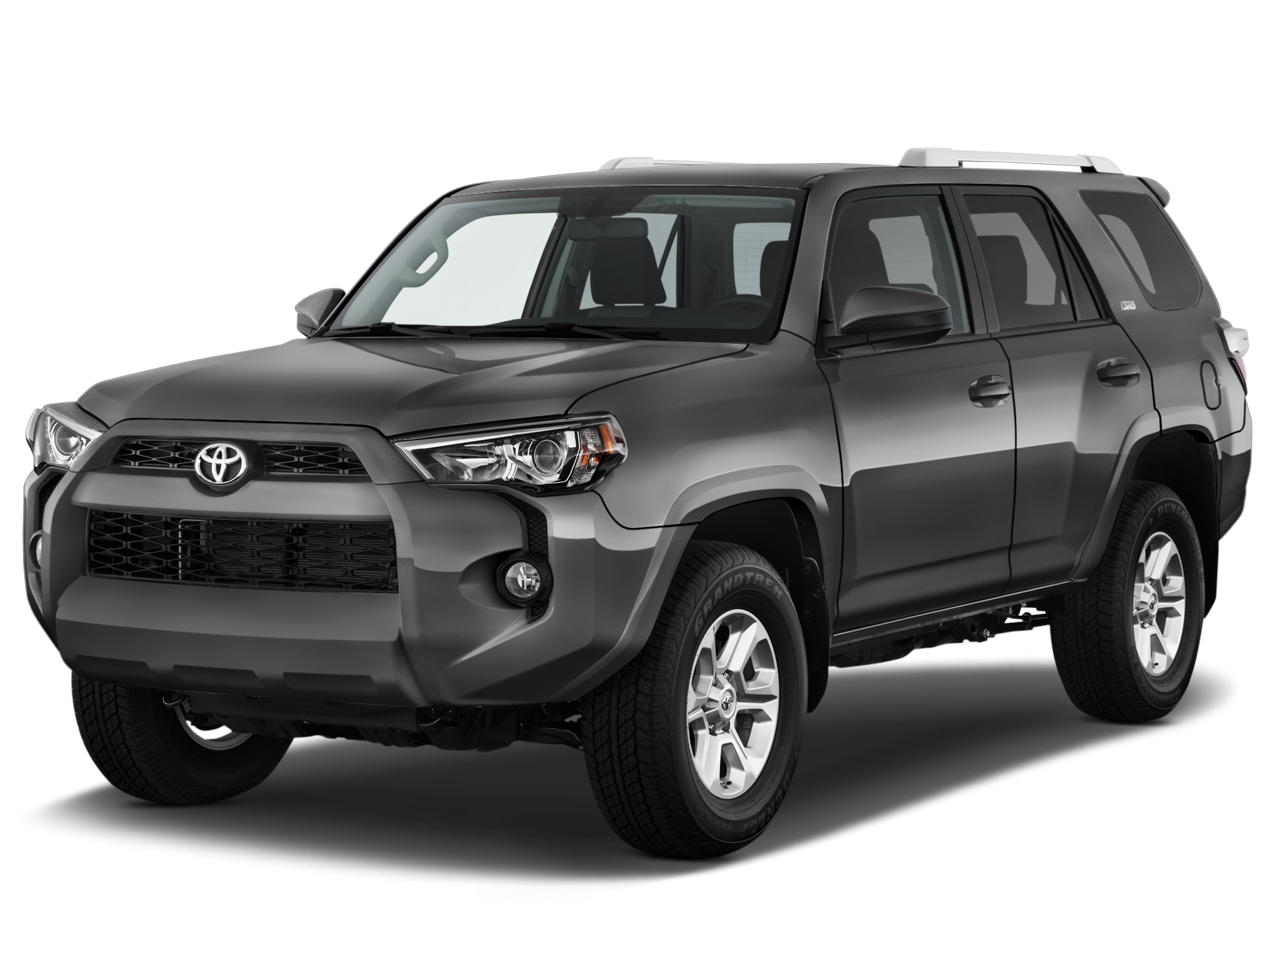 new 2016 toyota 4runner sr5 near modesto ca modesto toyota. Black Bedroom Furniture Sets. Home Design Ideas